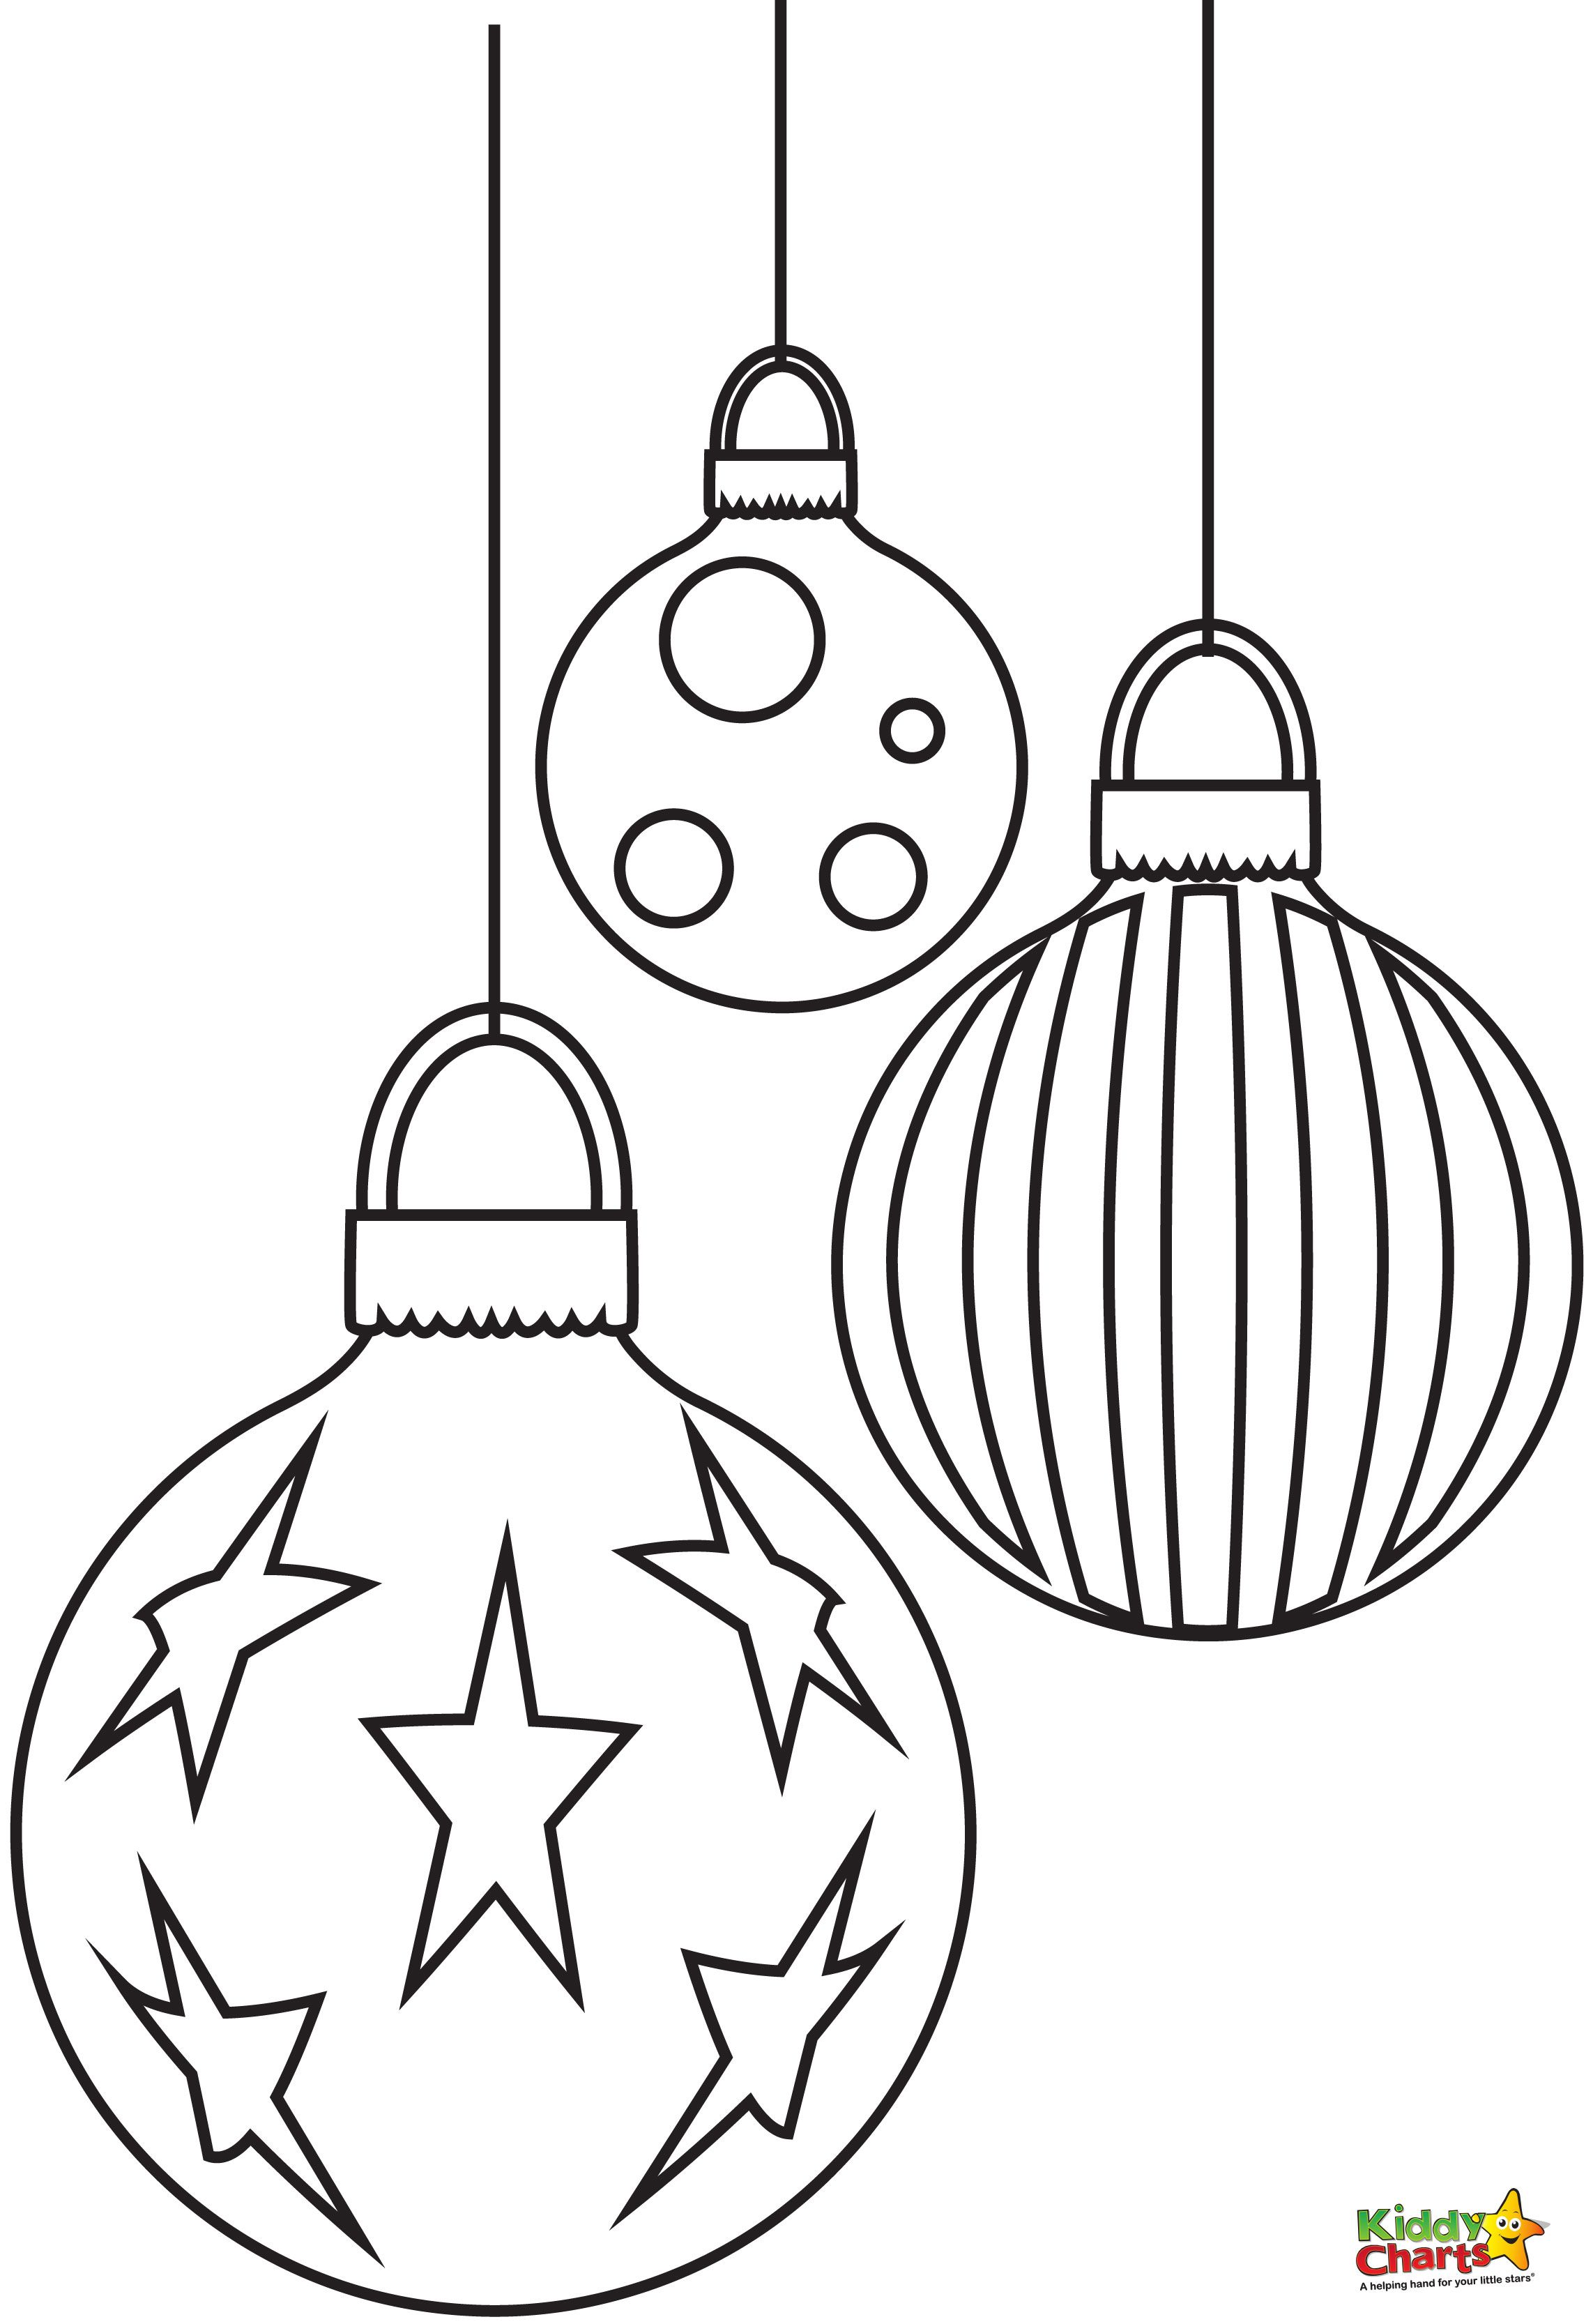 Baubles Free Christmas Coloring Pages from